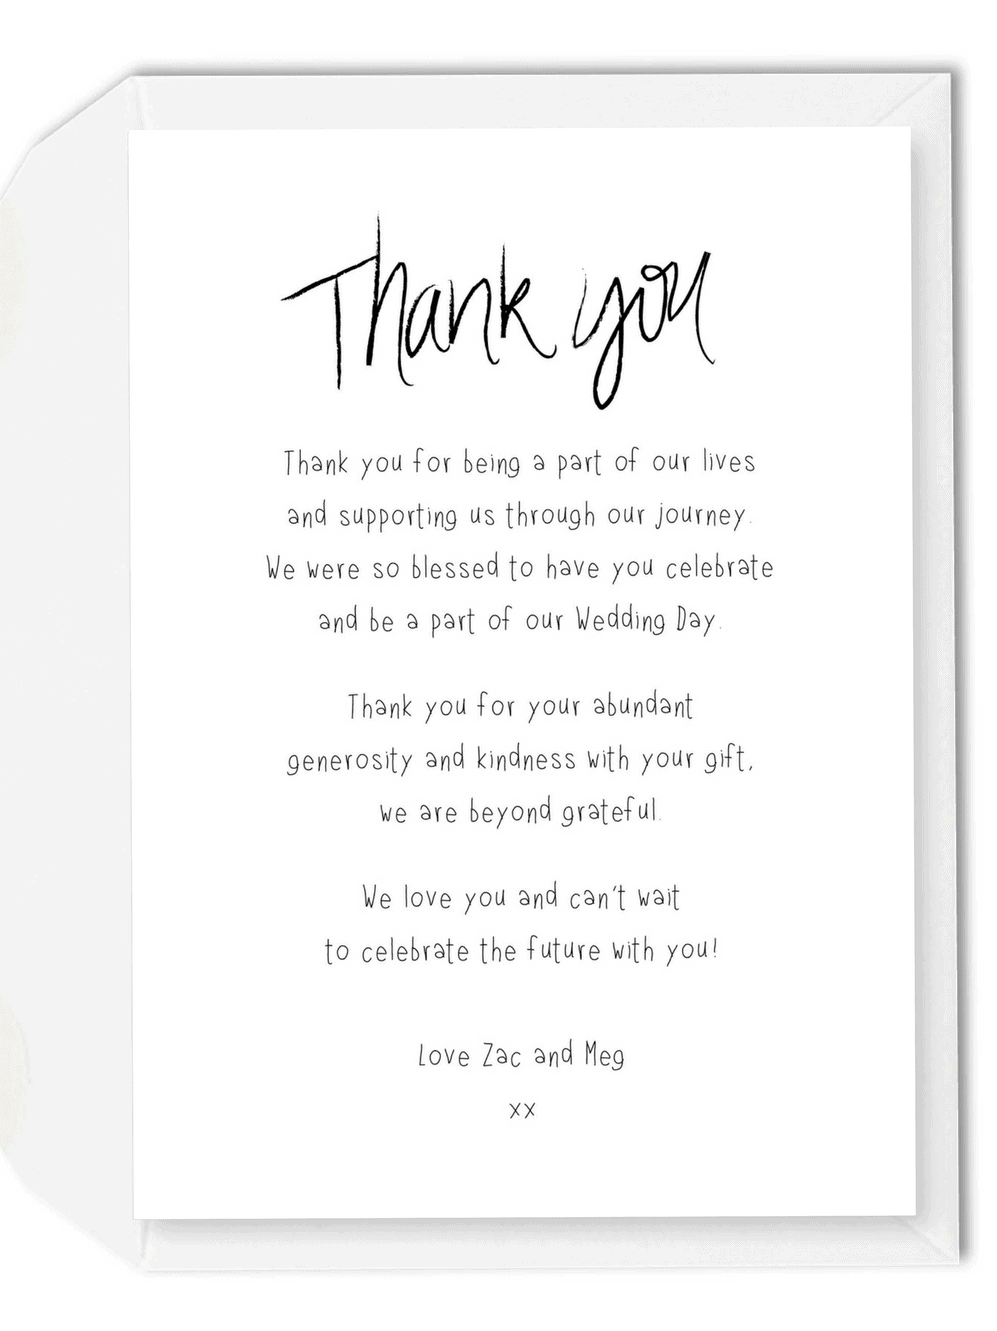 5 Wording Ideas for Your Wedding Thank You Cards – For the Love of ...